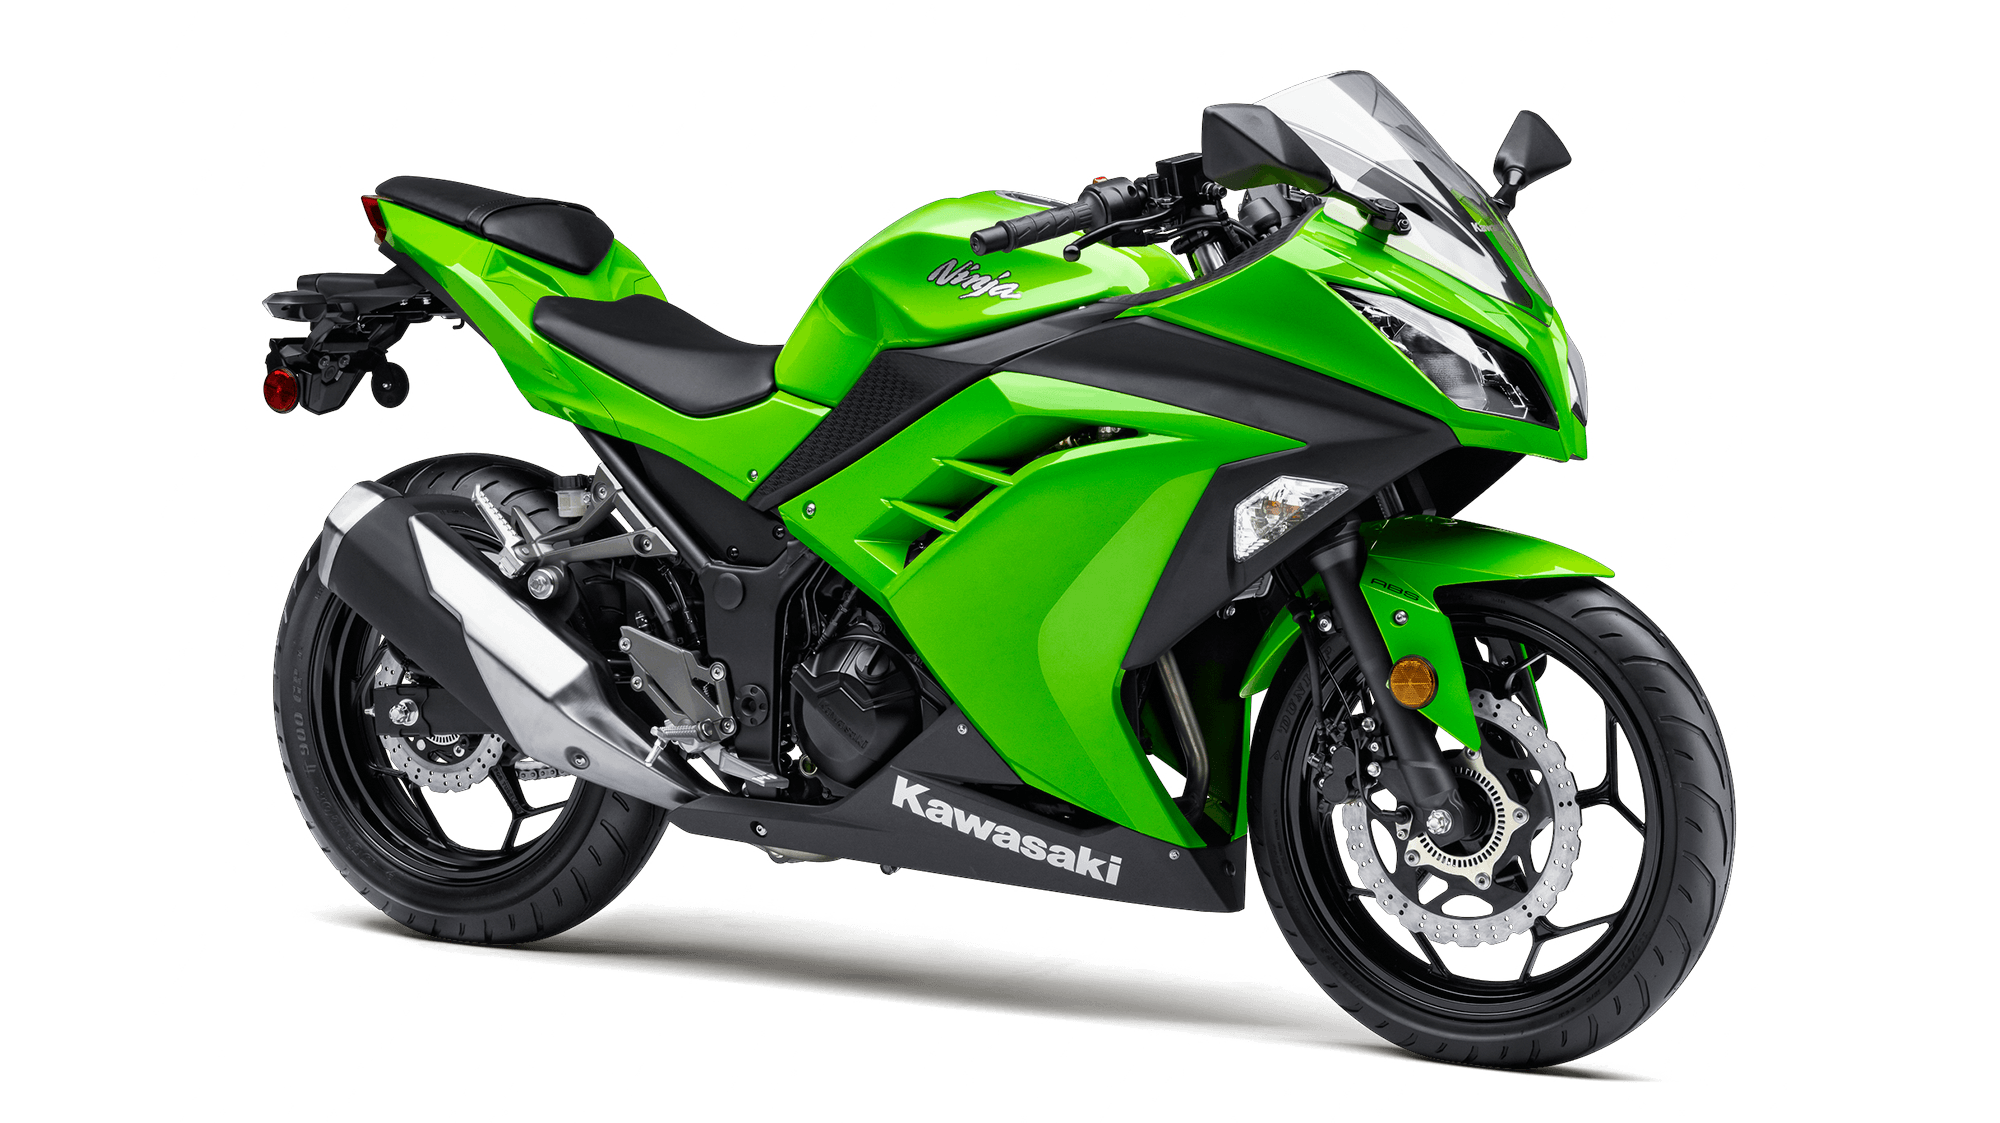 2015 NINJA® 300 ABS Sport Motorcycle by Kawasaki Green or